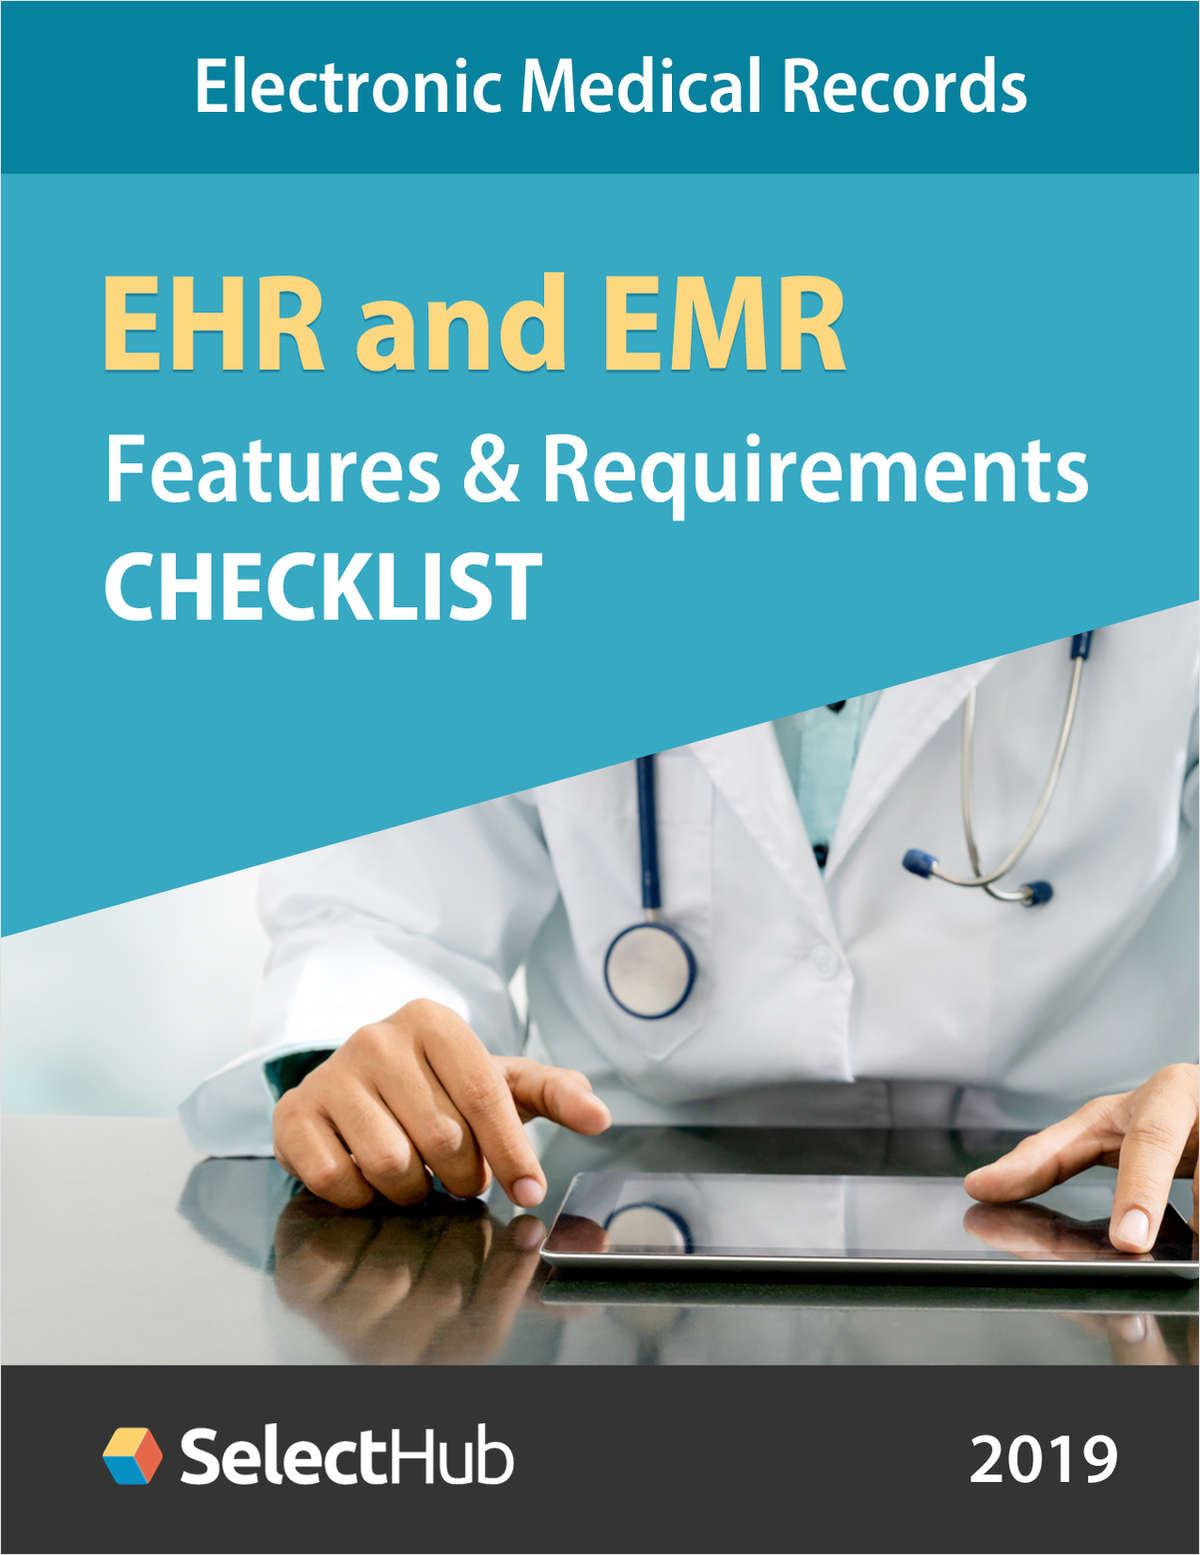 EHR and EMR System Features & Requirements Checklist